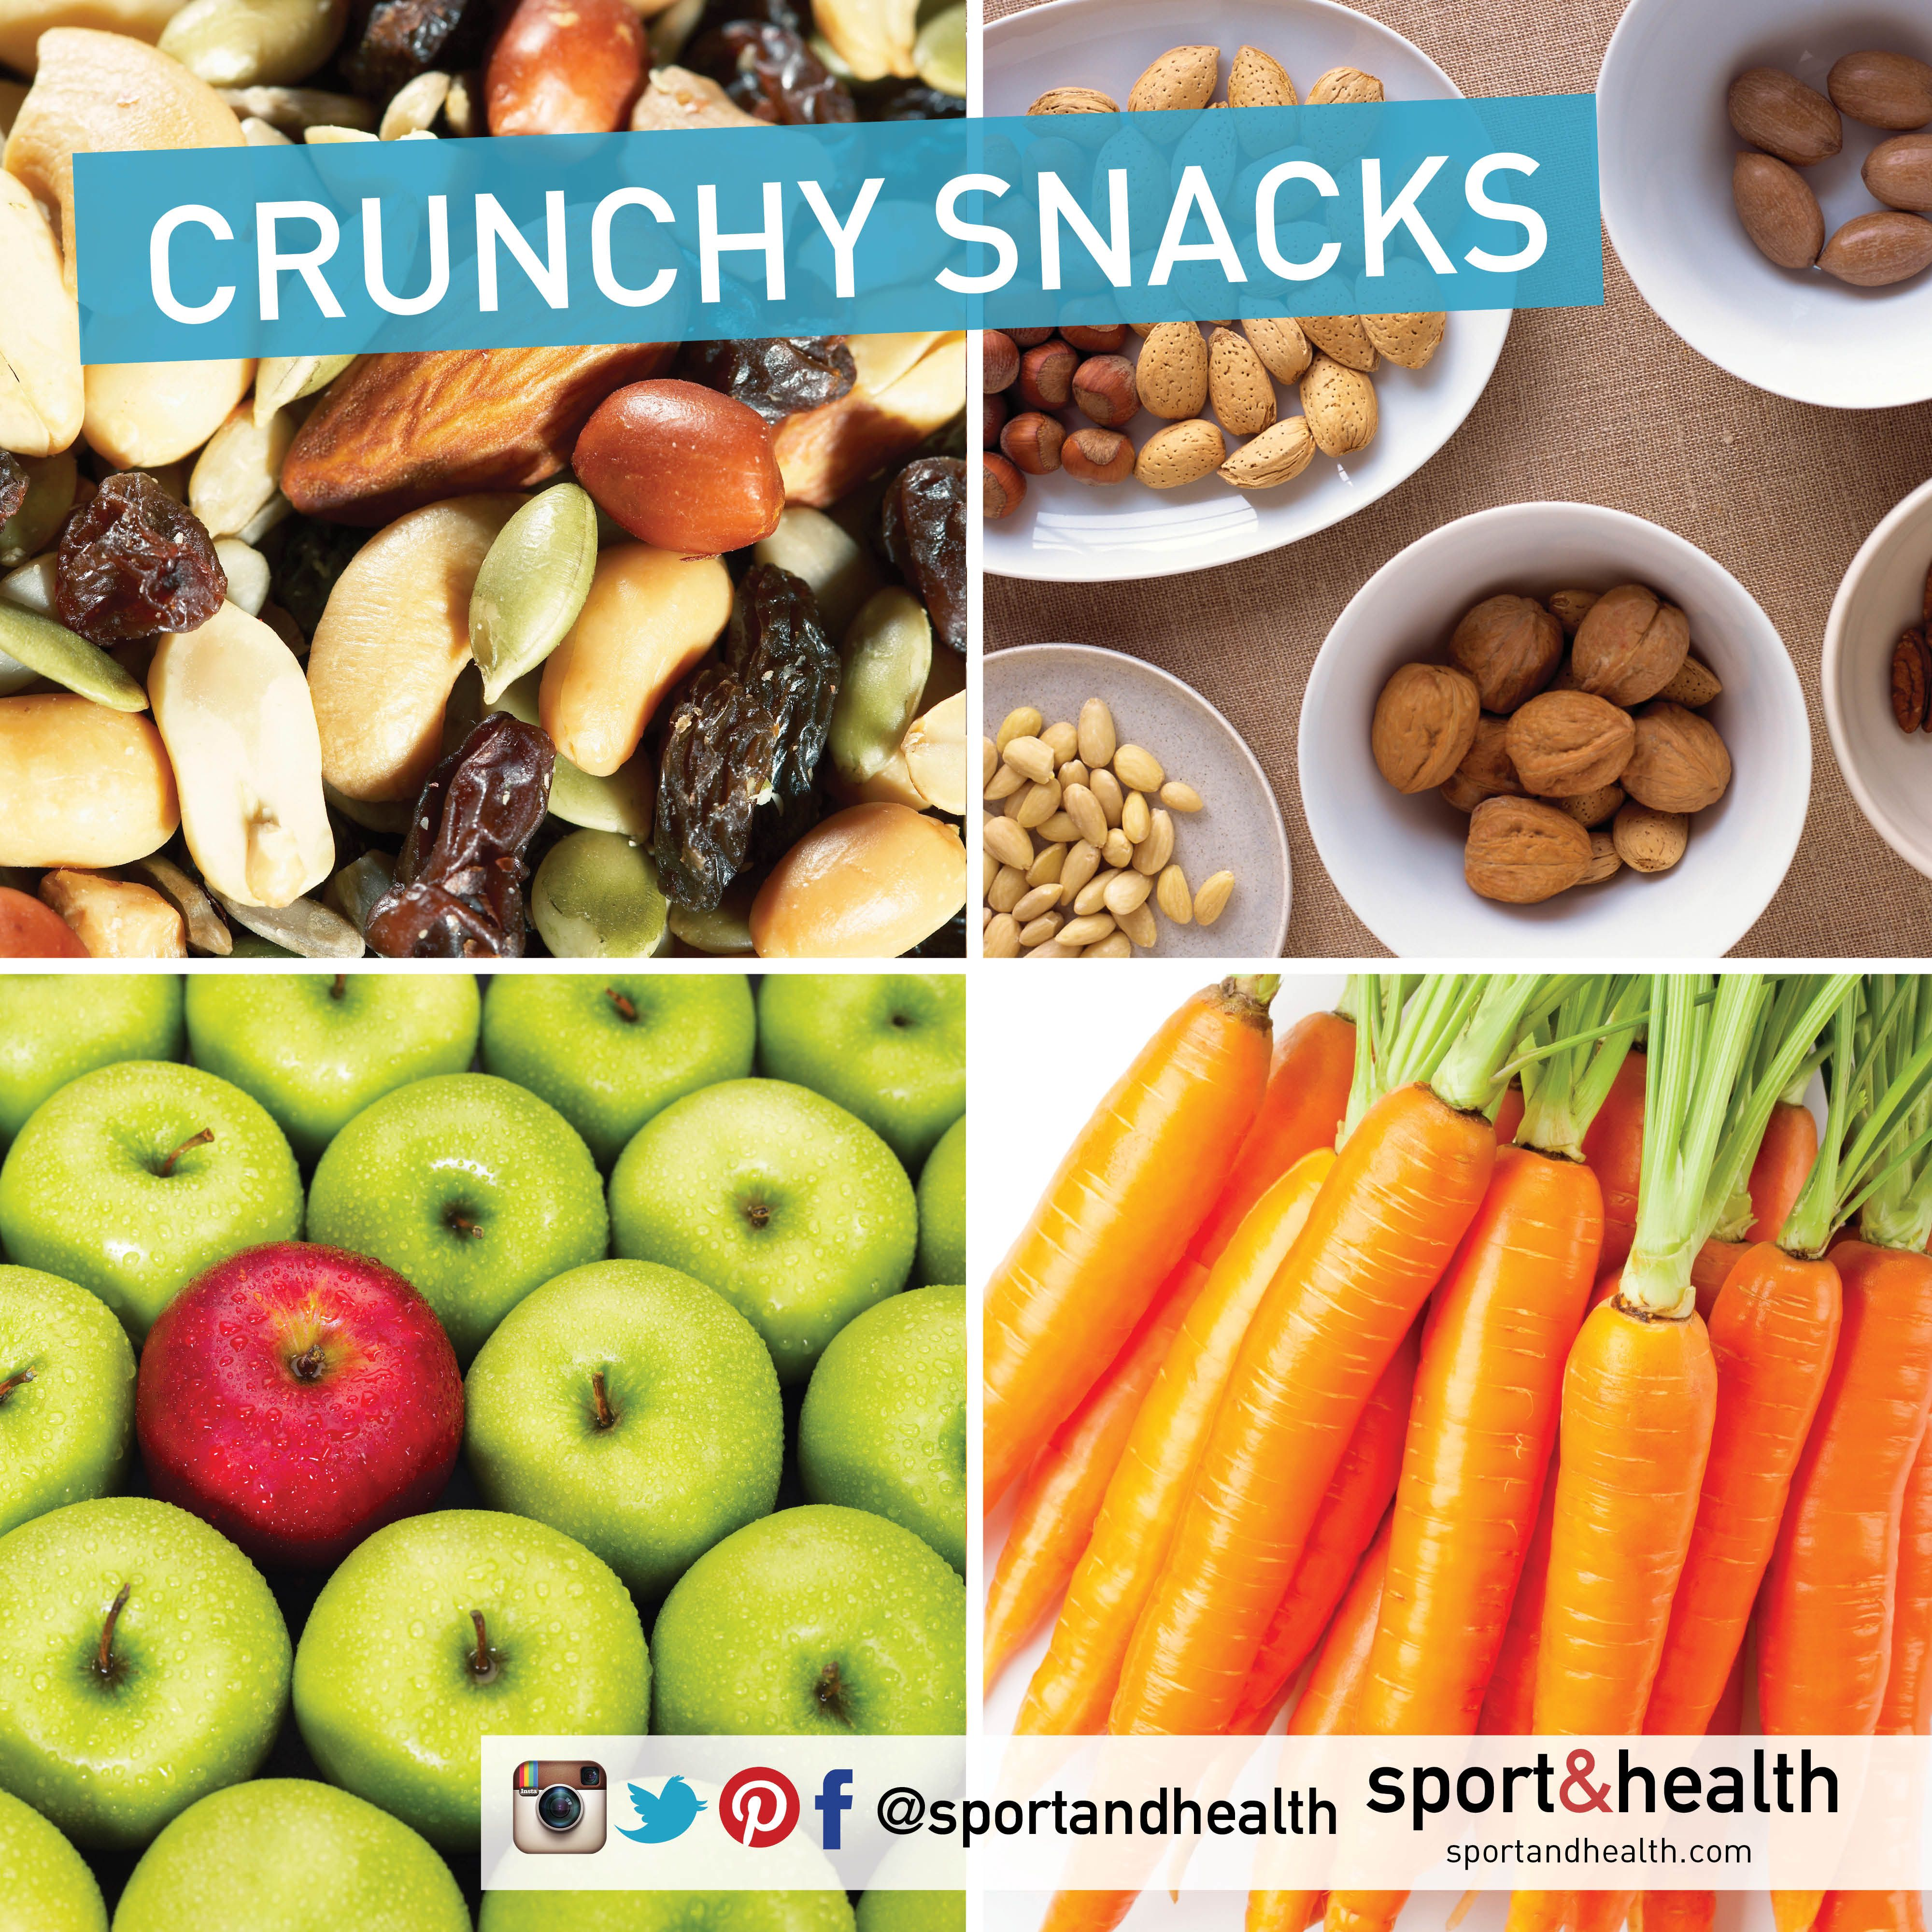 Craving crunch? Try one of these healthy go-to snacks:  • Raw nuts & seeds • Carrots, broccoli, cauliflower • Celery with almond butter • Apples with cashews • Wasabi peas • Make your own trail mix: goji berries, mulberries, raw cacao, pumpkins seeds, walnuts & almonds